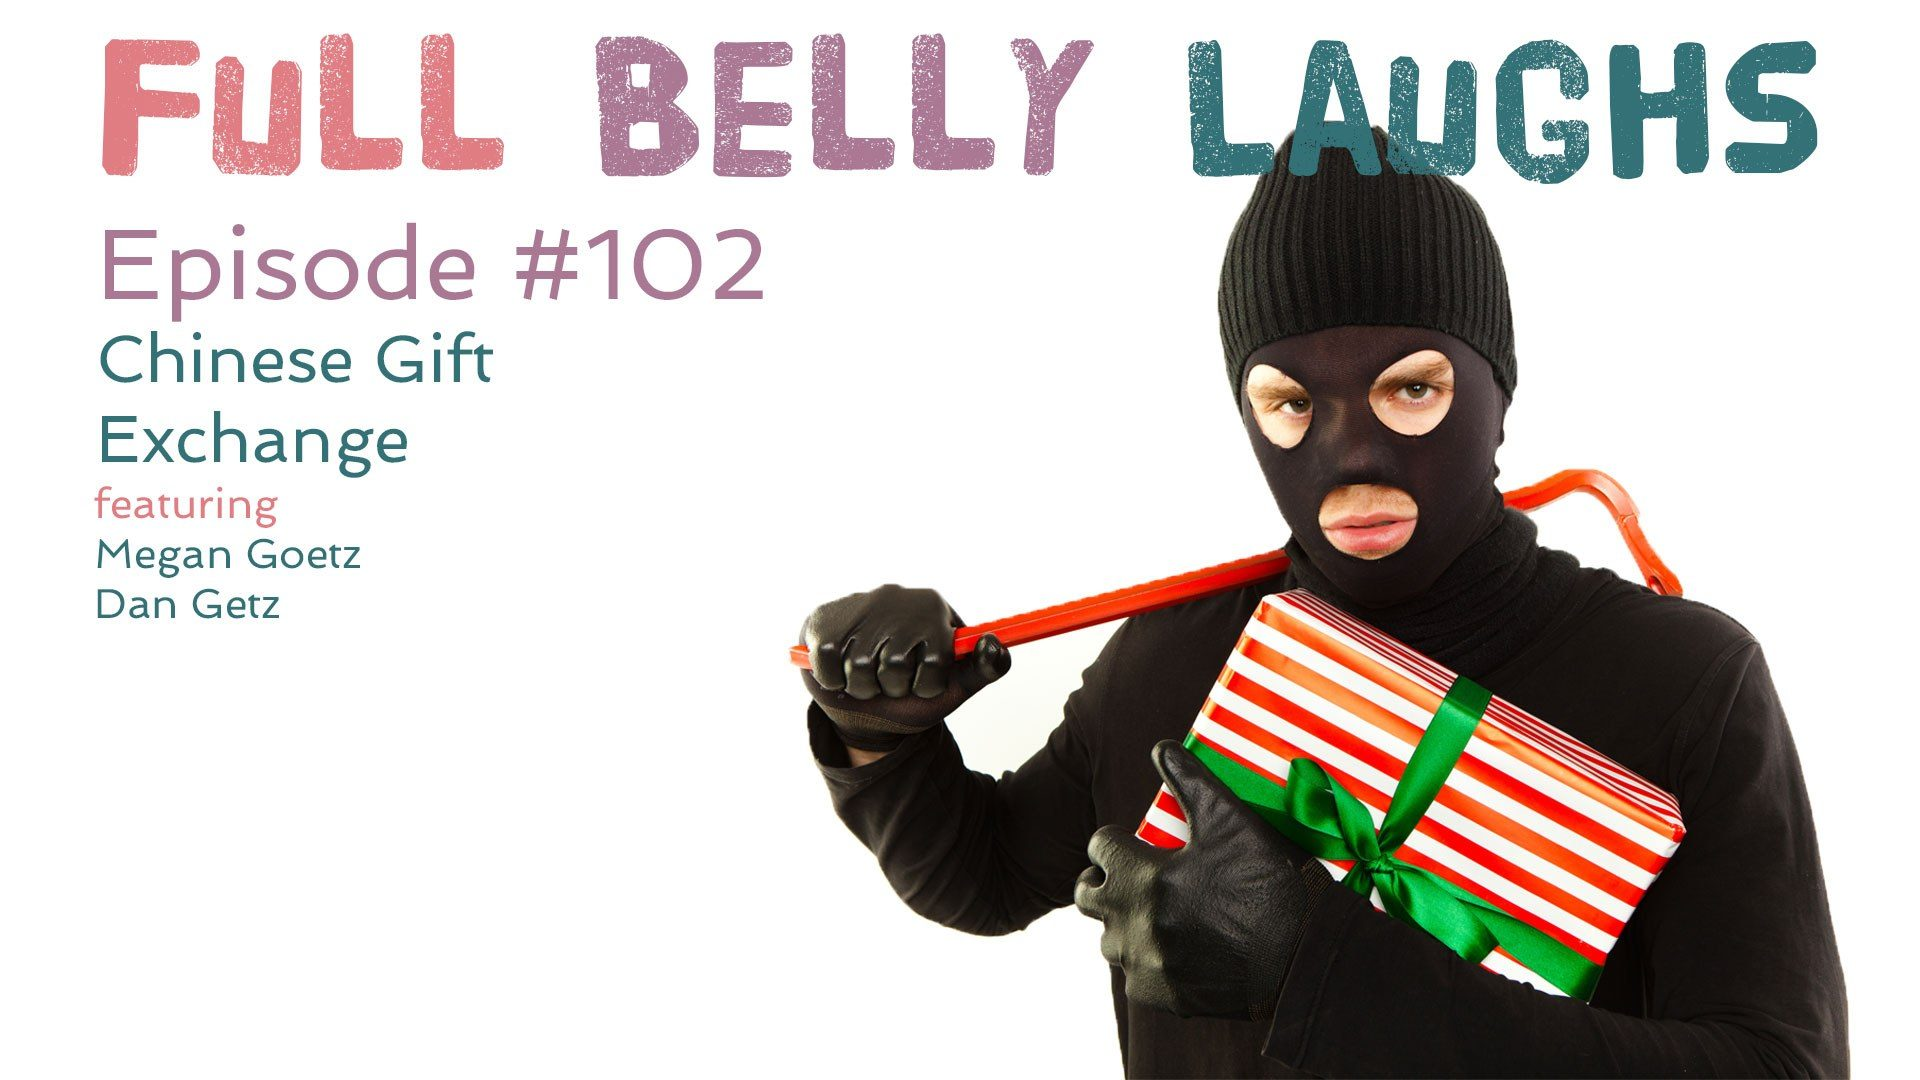 full belly laughs podcast episode 102 white elephant audio artwork